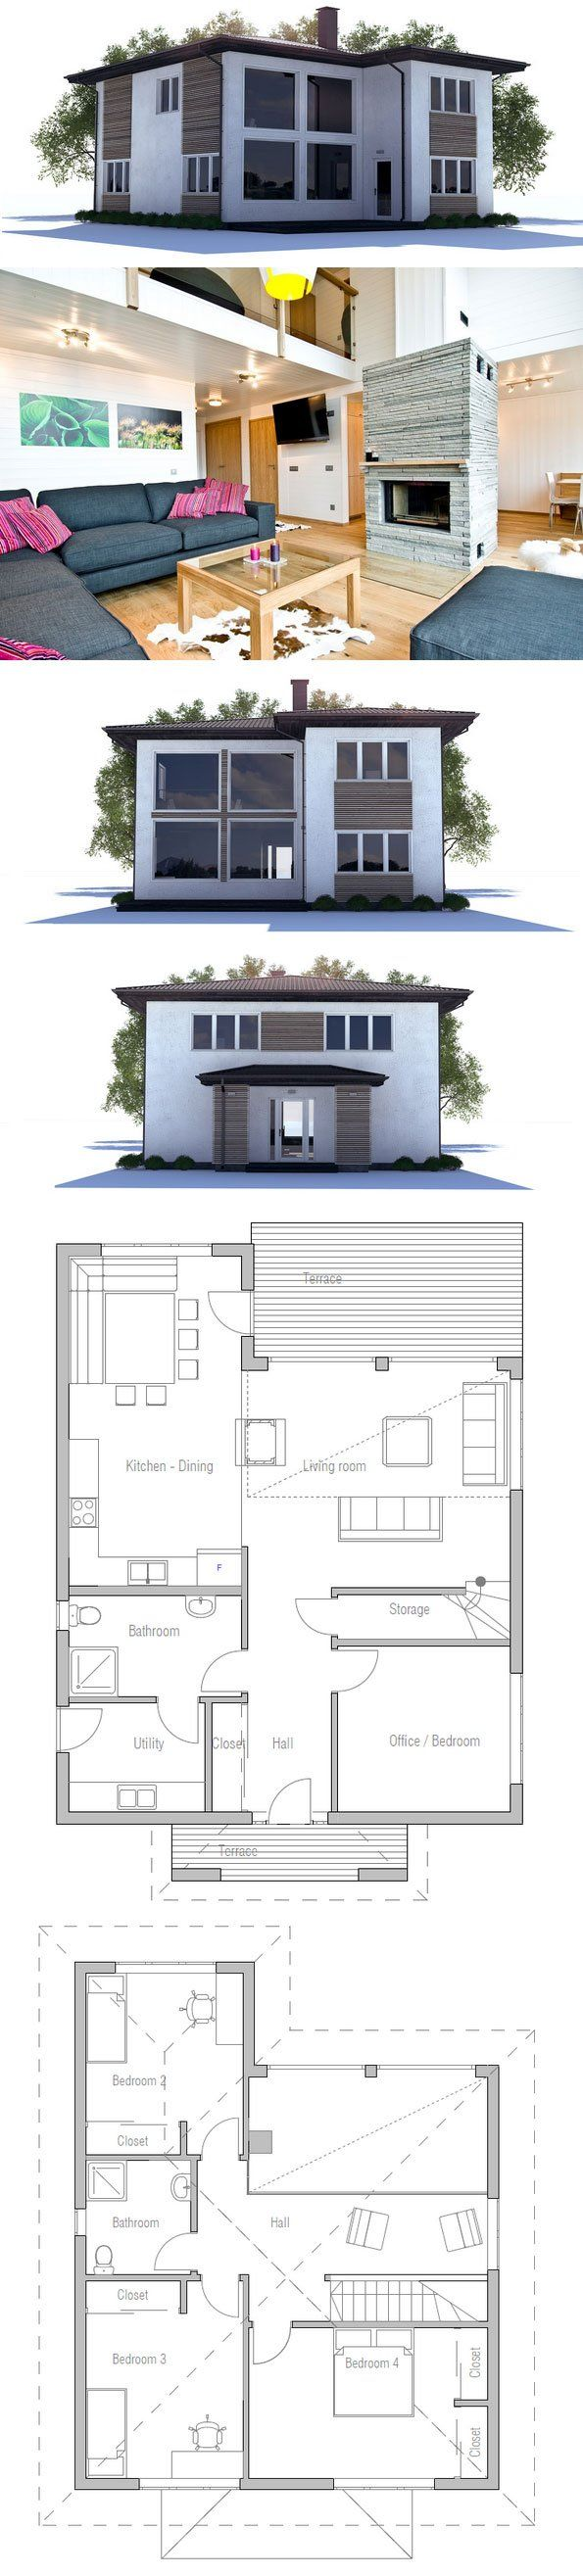 1000+ images about iny Lot House Plans on Pinterest - ^